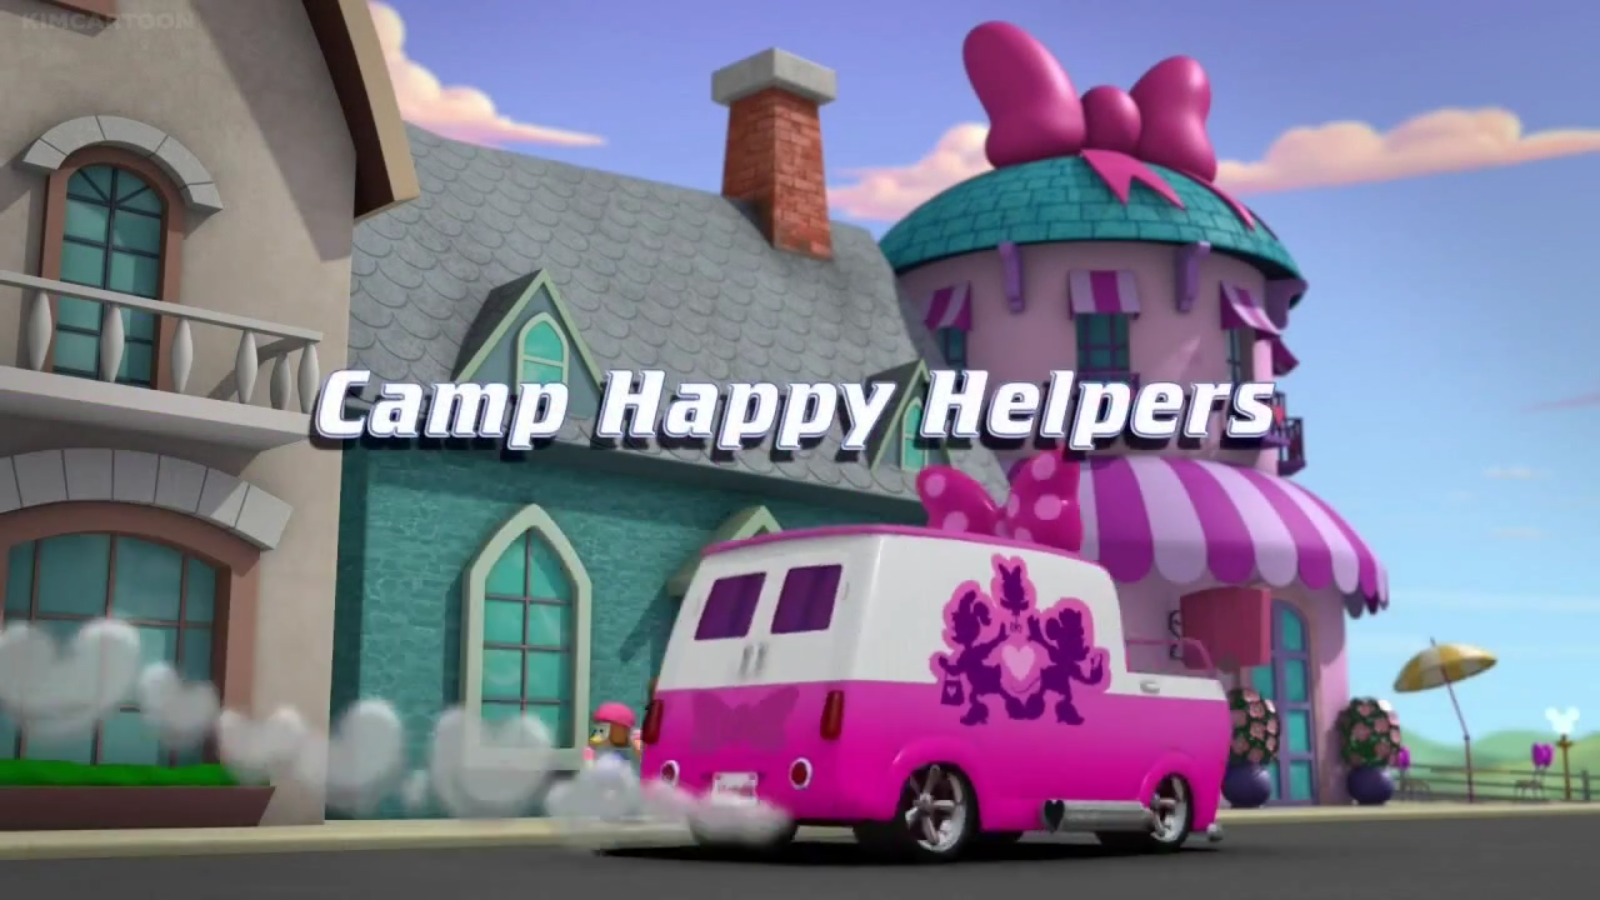 Camp Happy Helpers